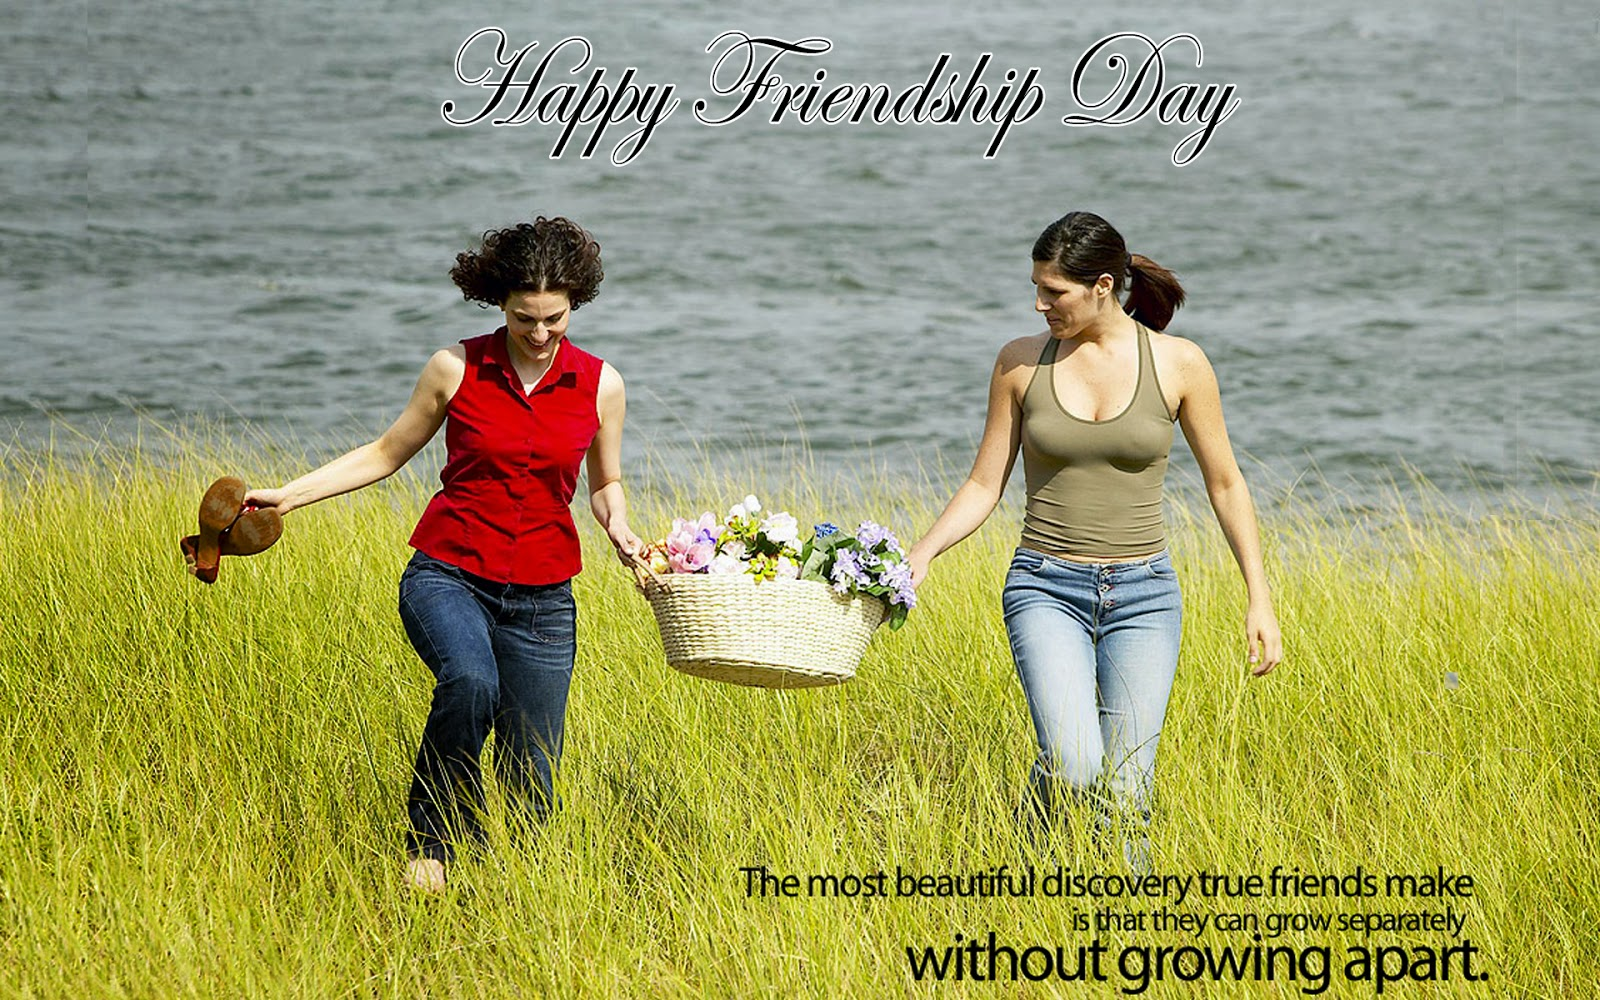 happy friendship day 2014 hd wallpapers banner images for free download